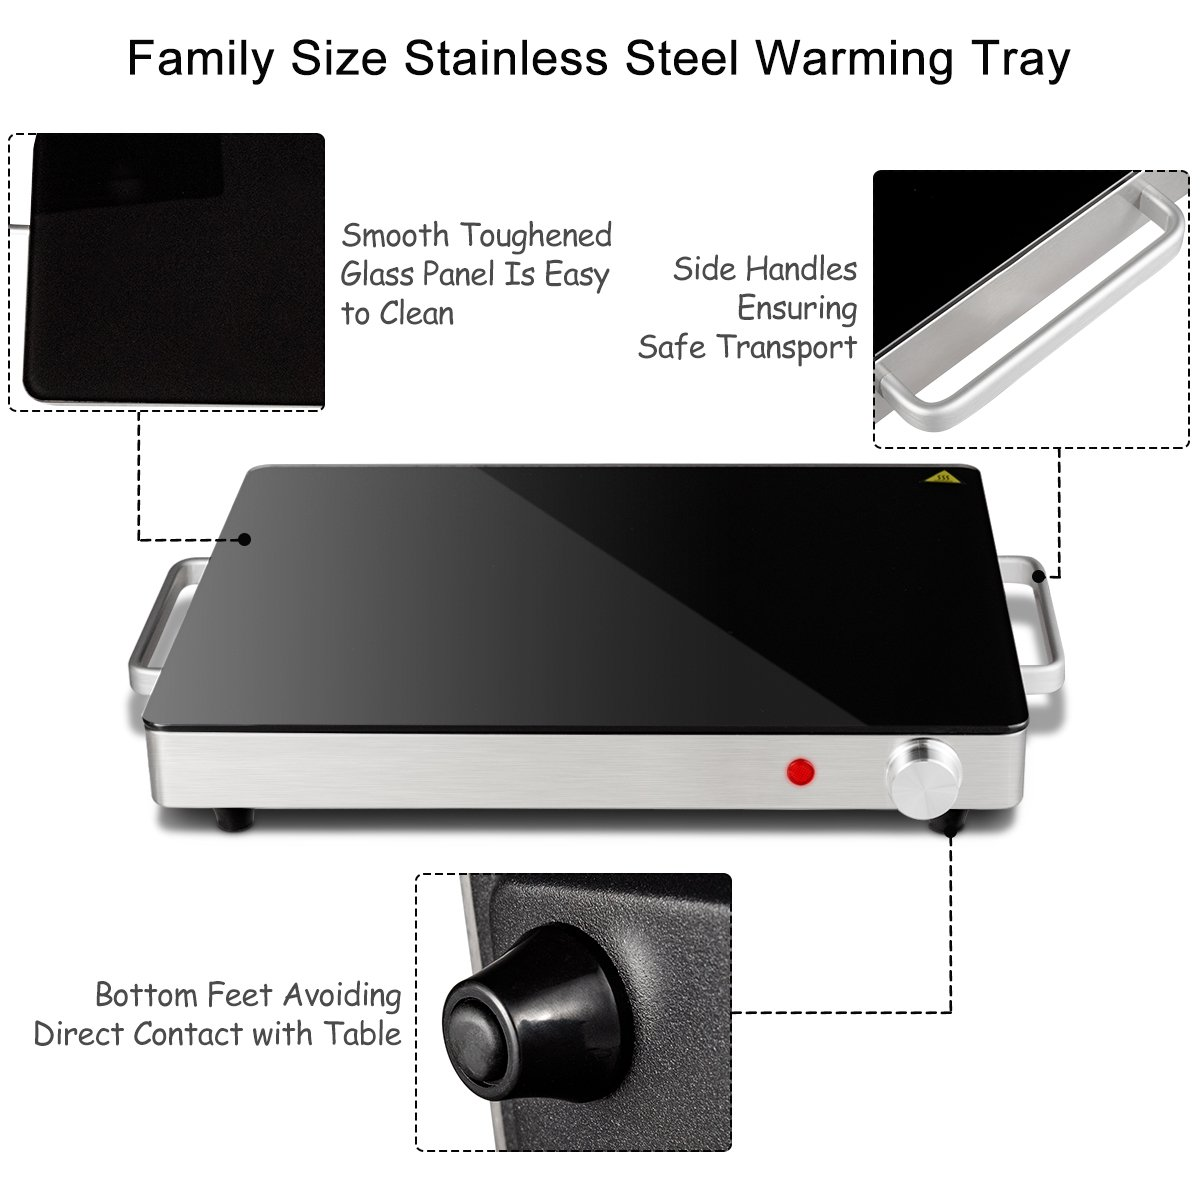 Giantex Warming Tray with Adjustable Temperature Control Perfect For Buffets, Restaurants and Home Dinners by Giantex (Image #5)